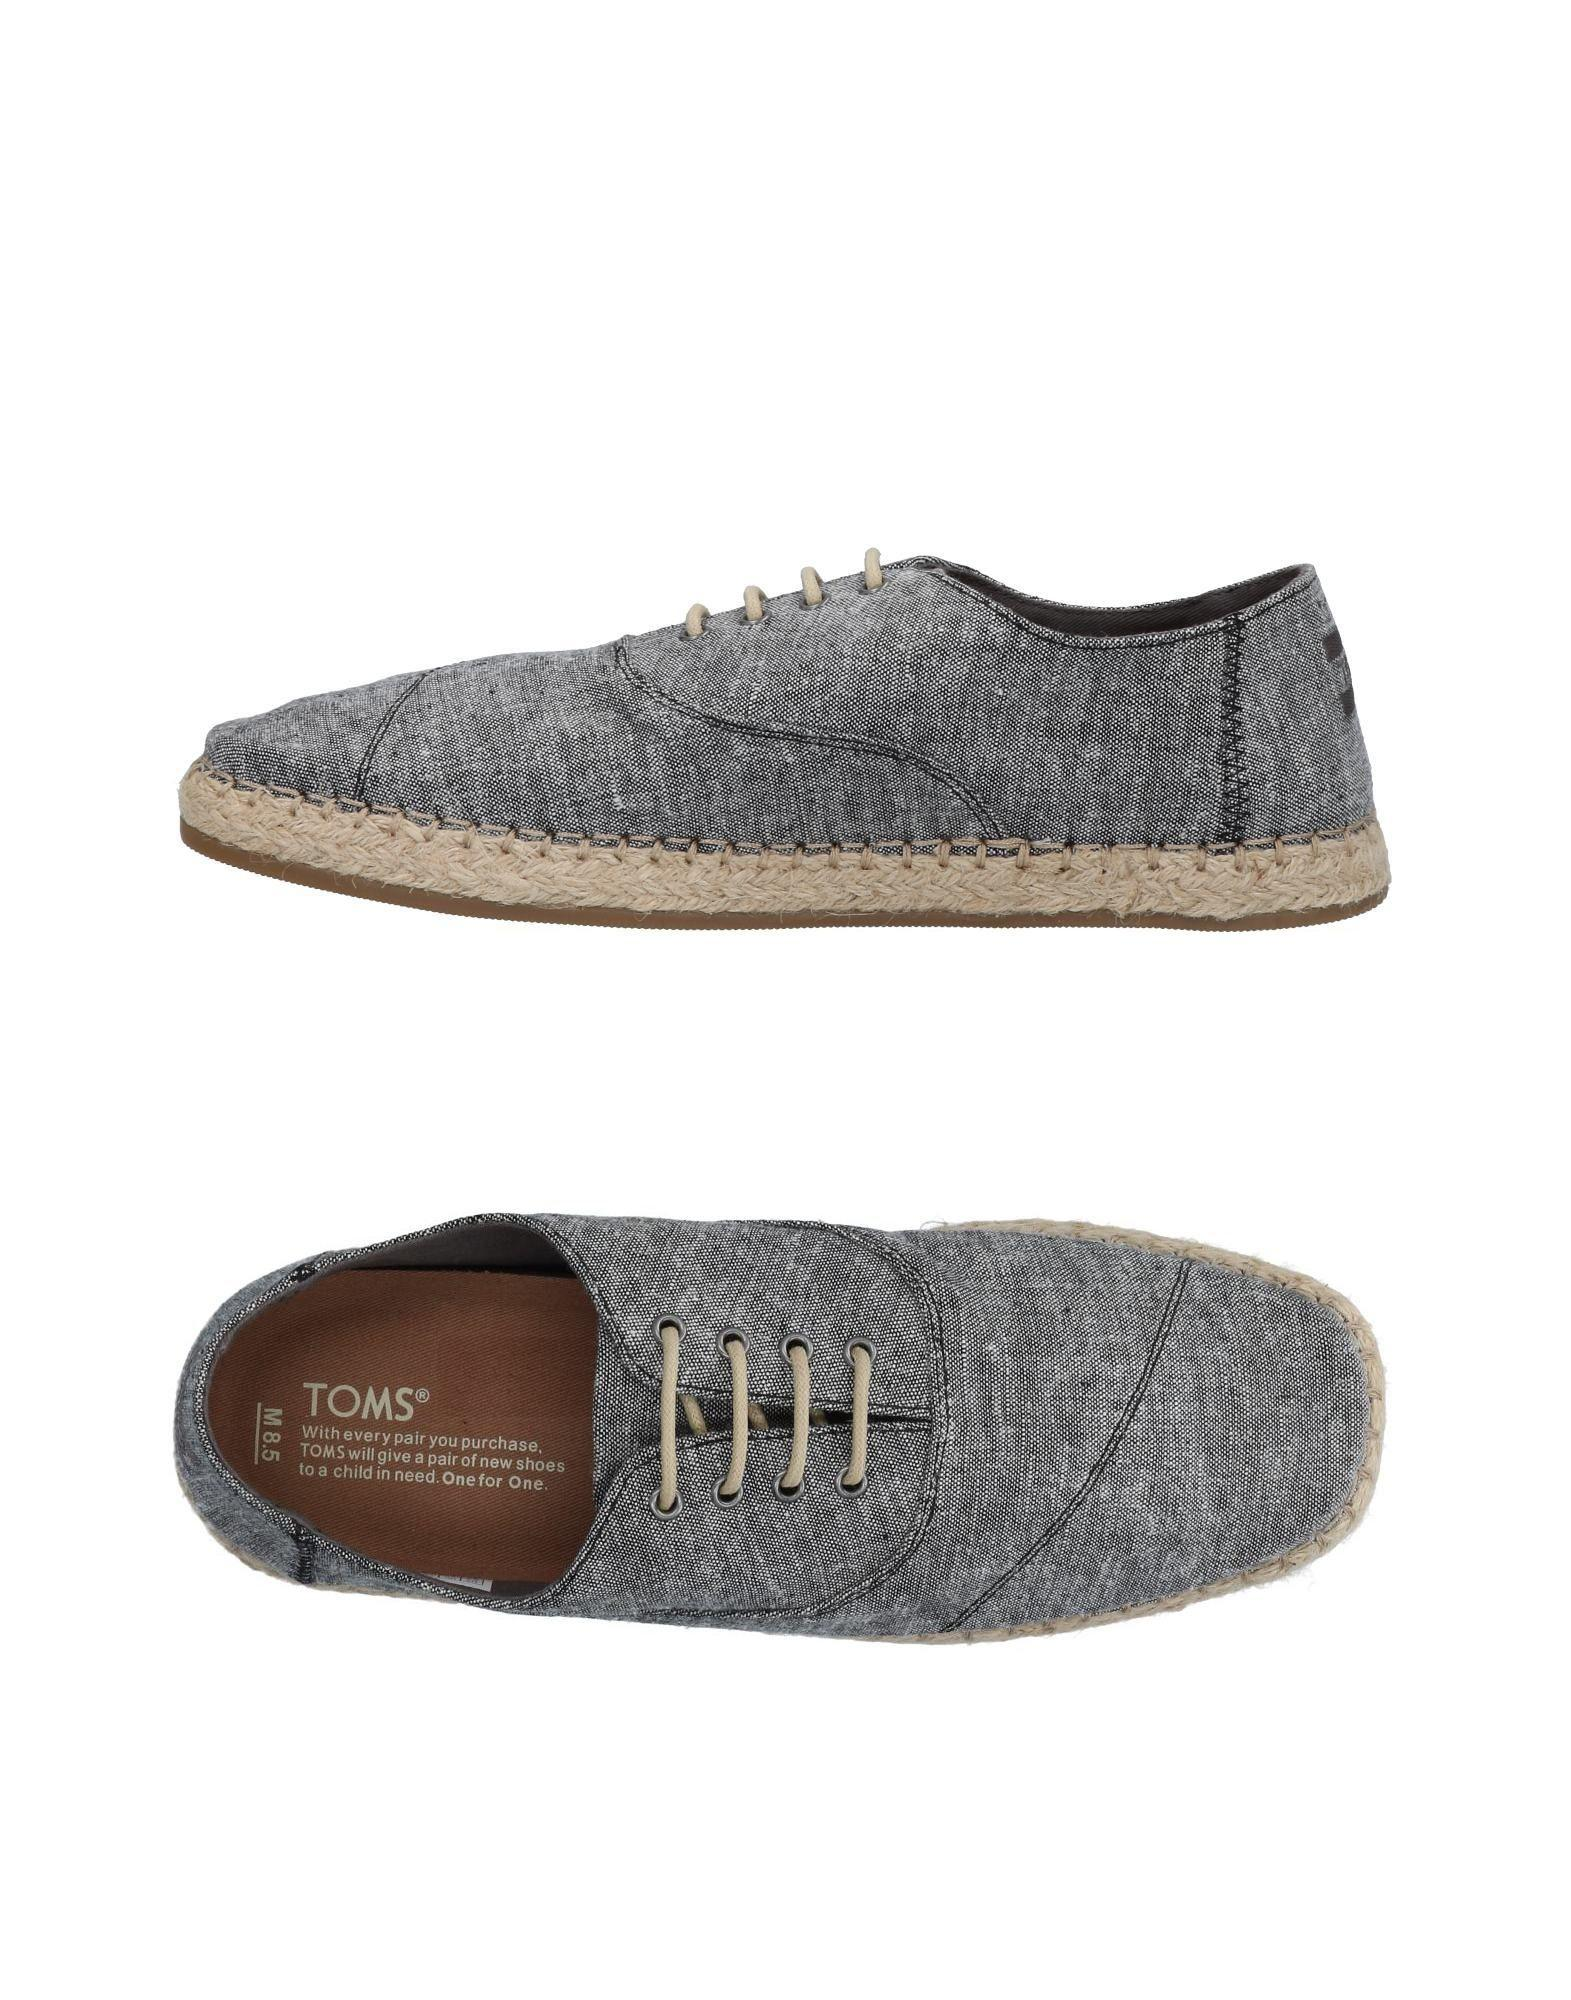 fa82abba1cd Lyst - Toms Lace-up Shoe in Gray for Men